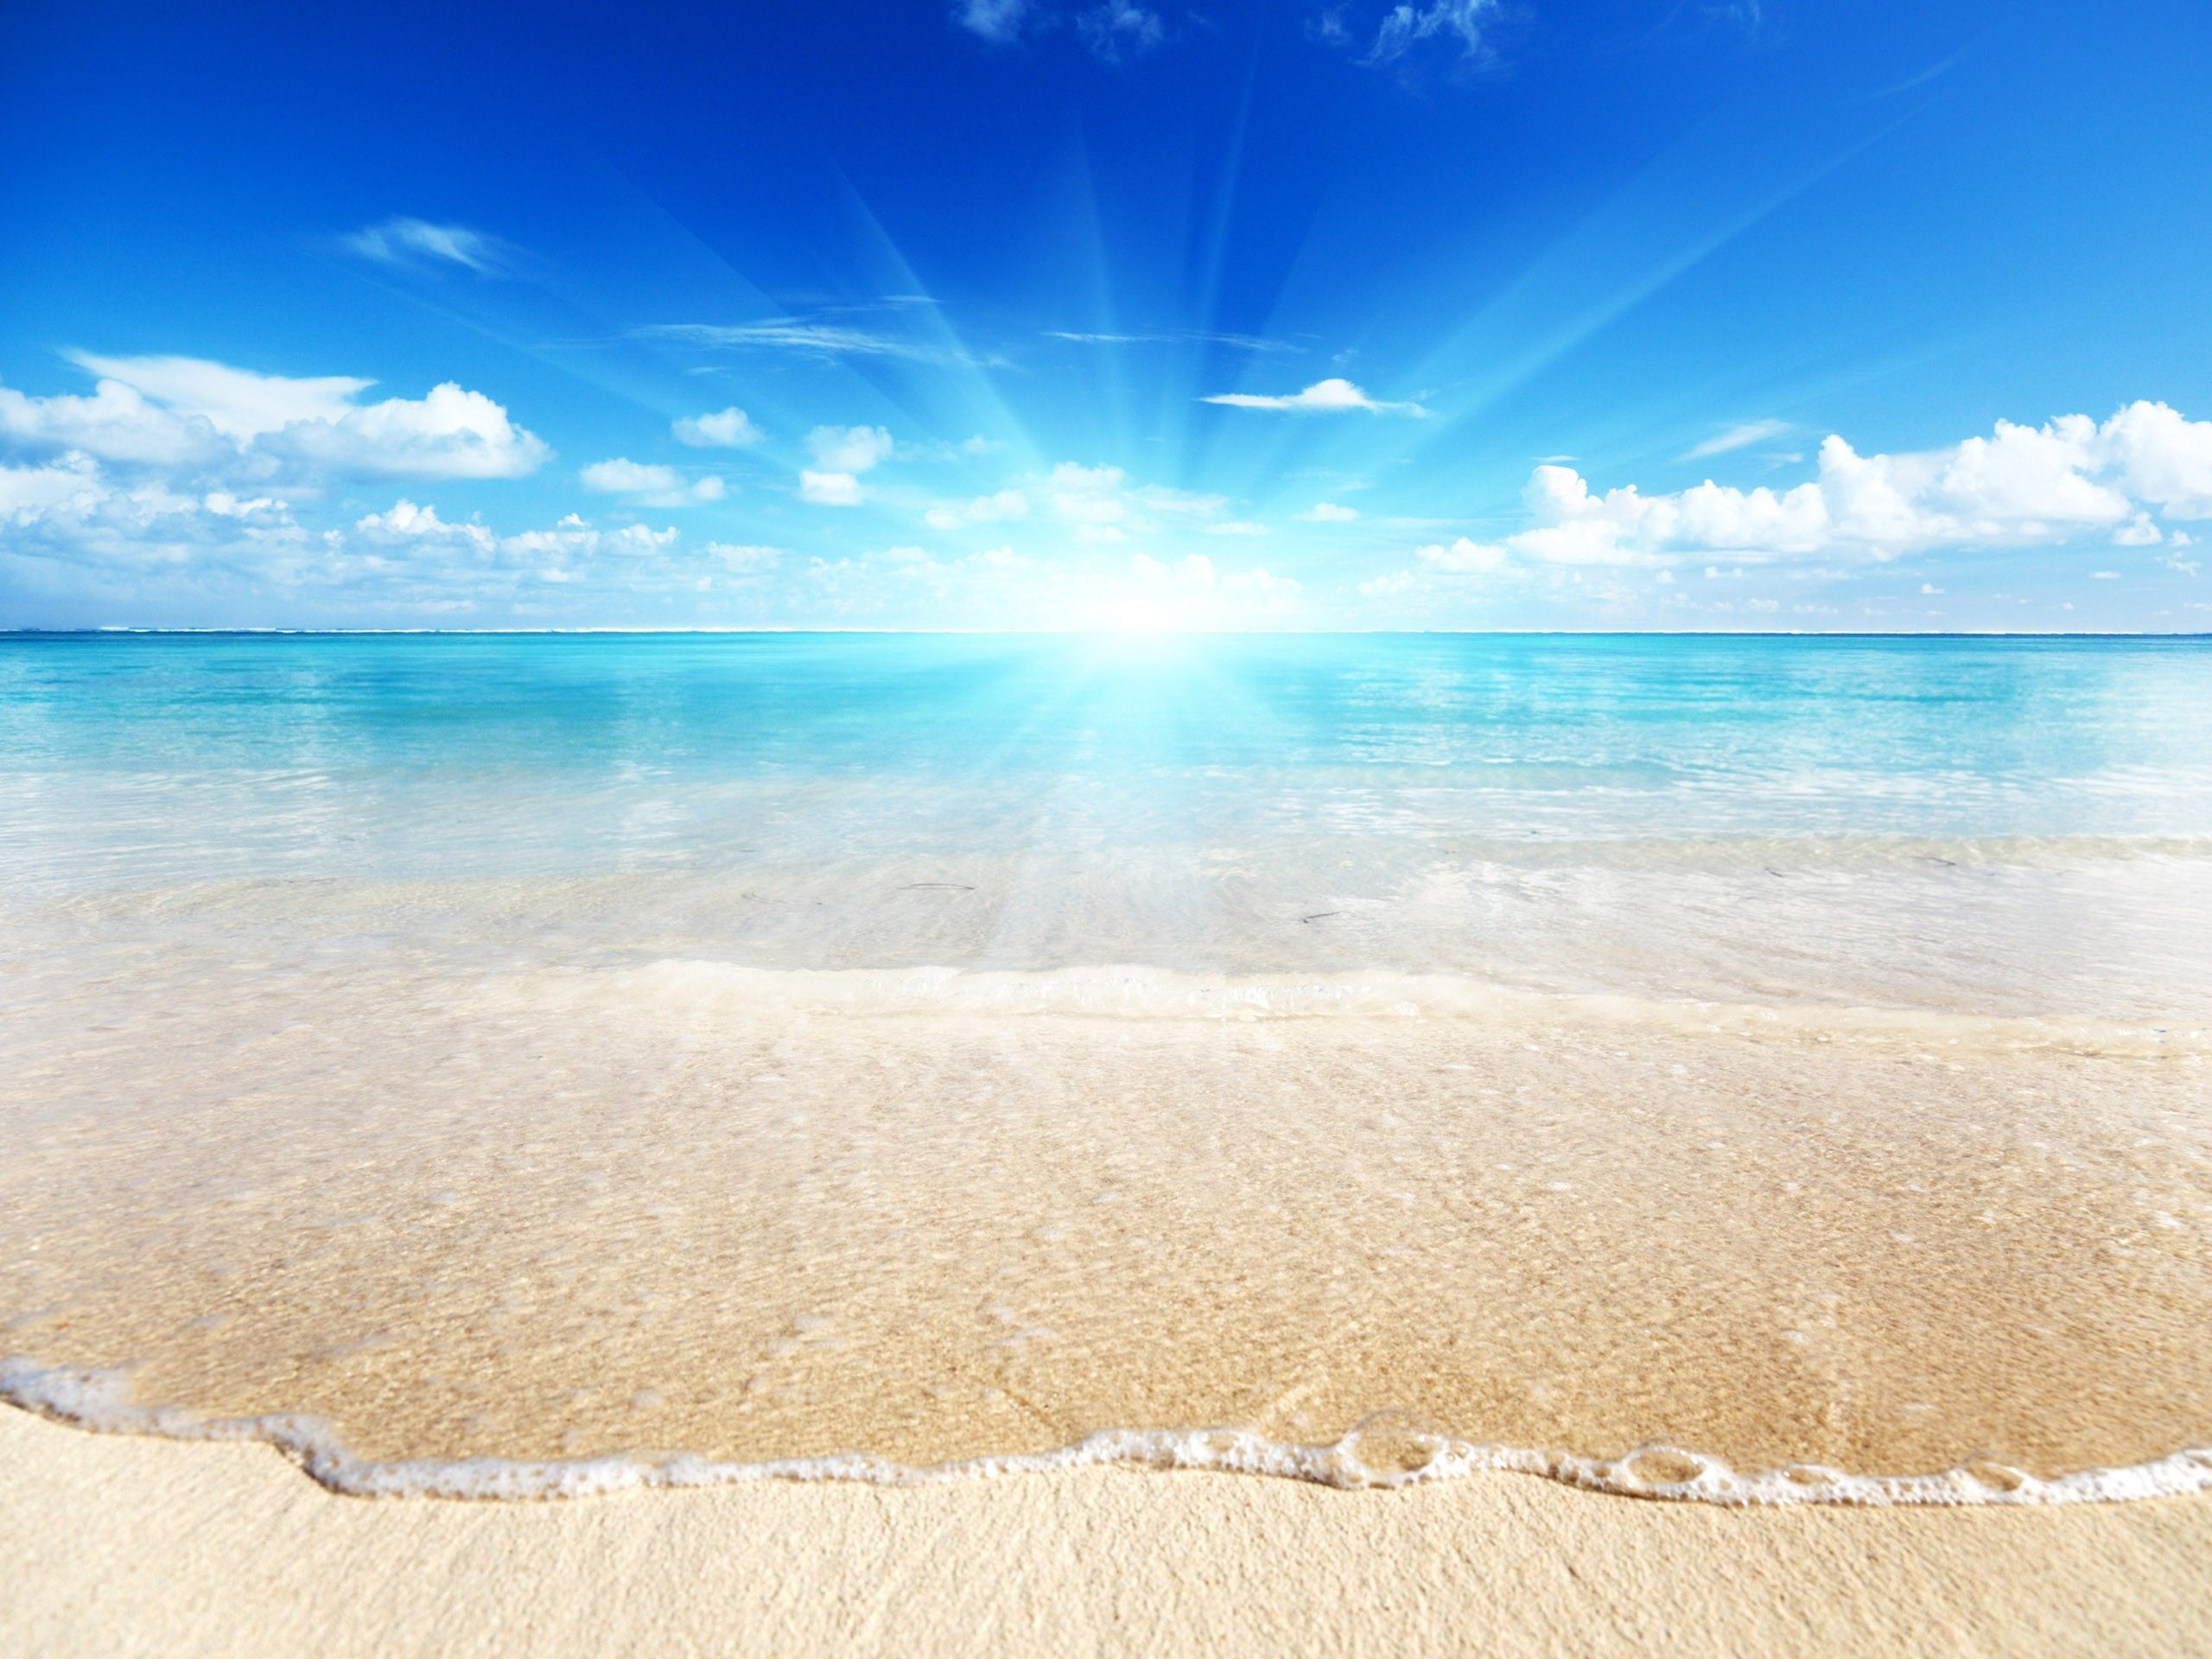 Desktop Seaview HD Wallpapers Beautiful ocean, Beach